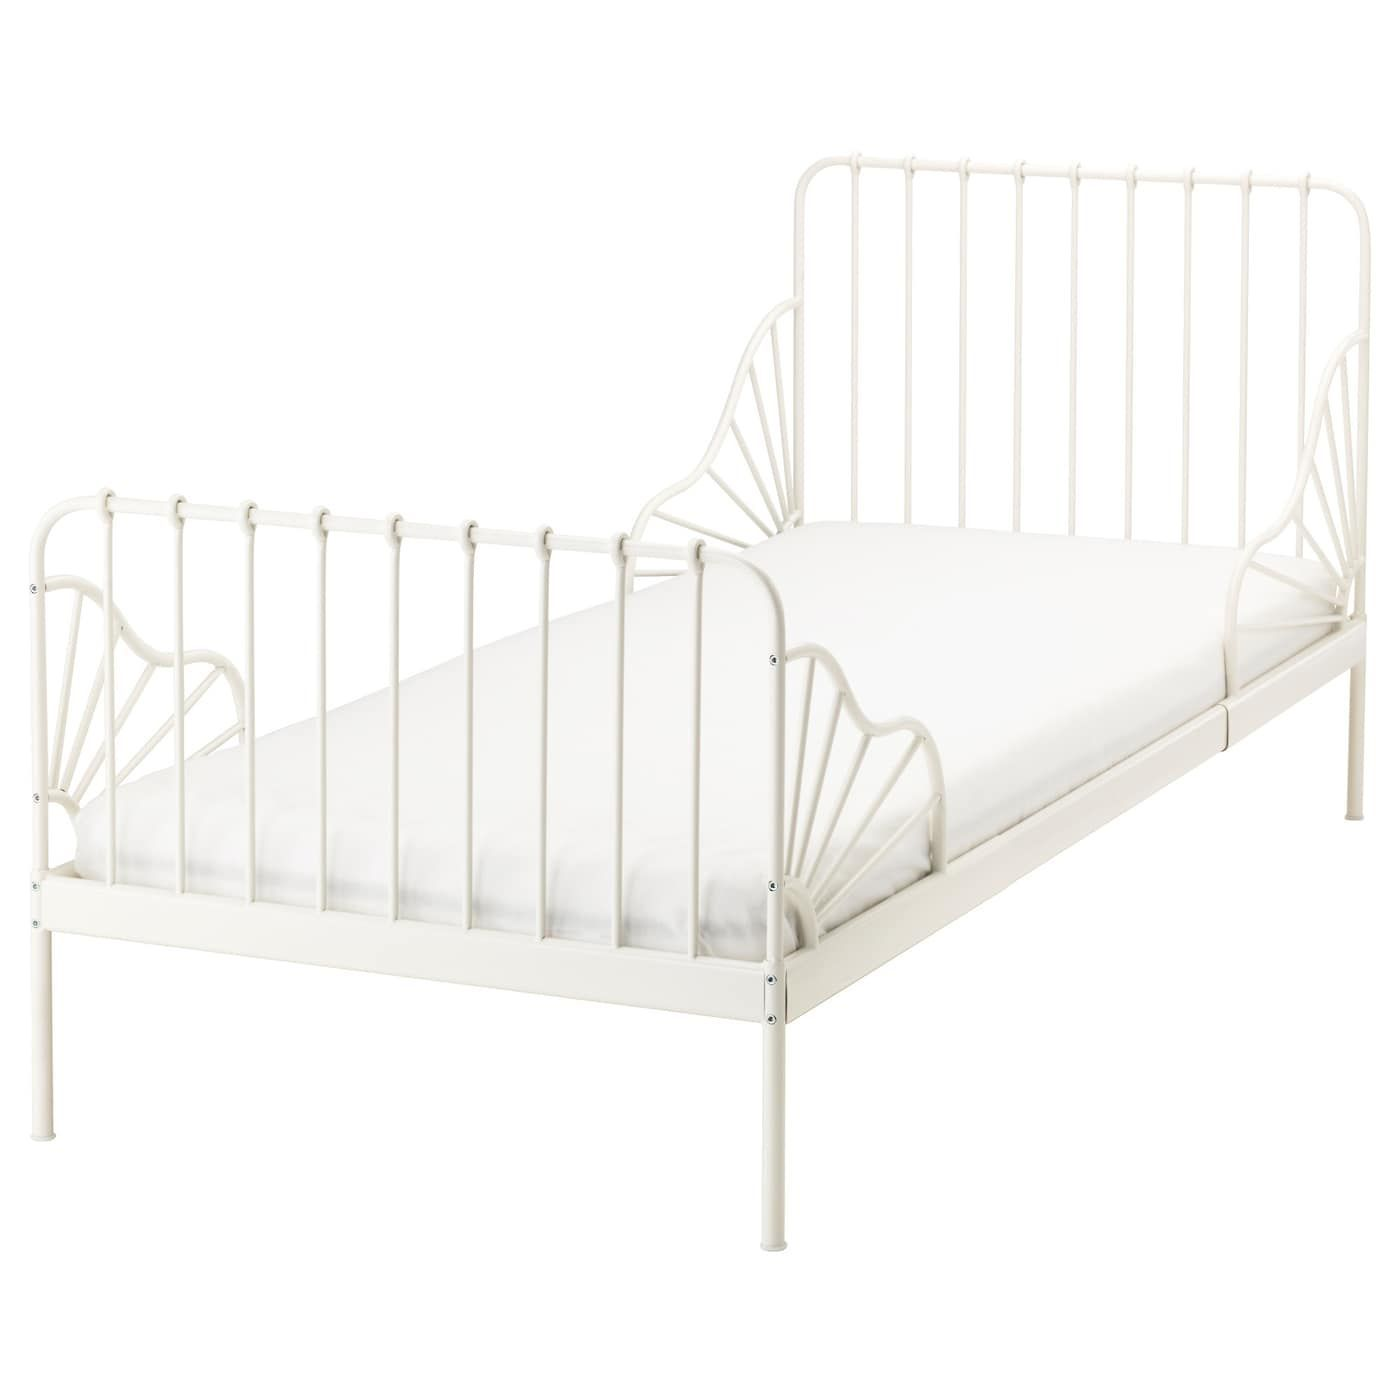 Minnen Ext Bed Frame With Slatted Bed Base White Ikea Ikea